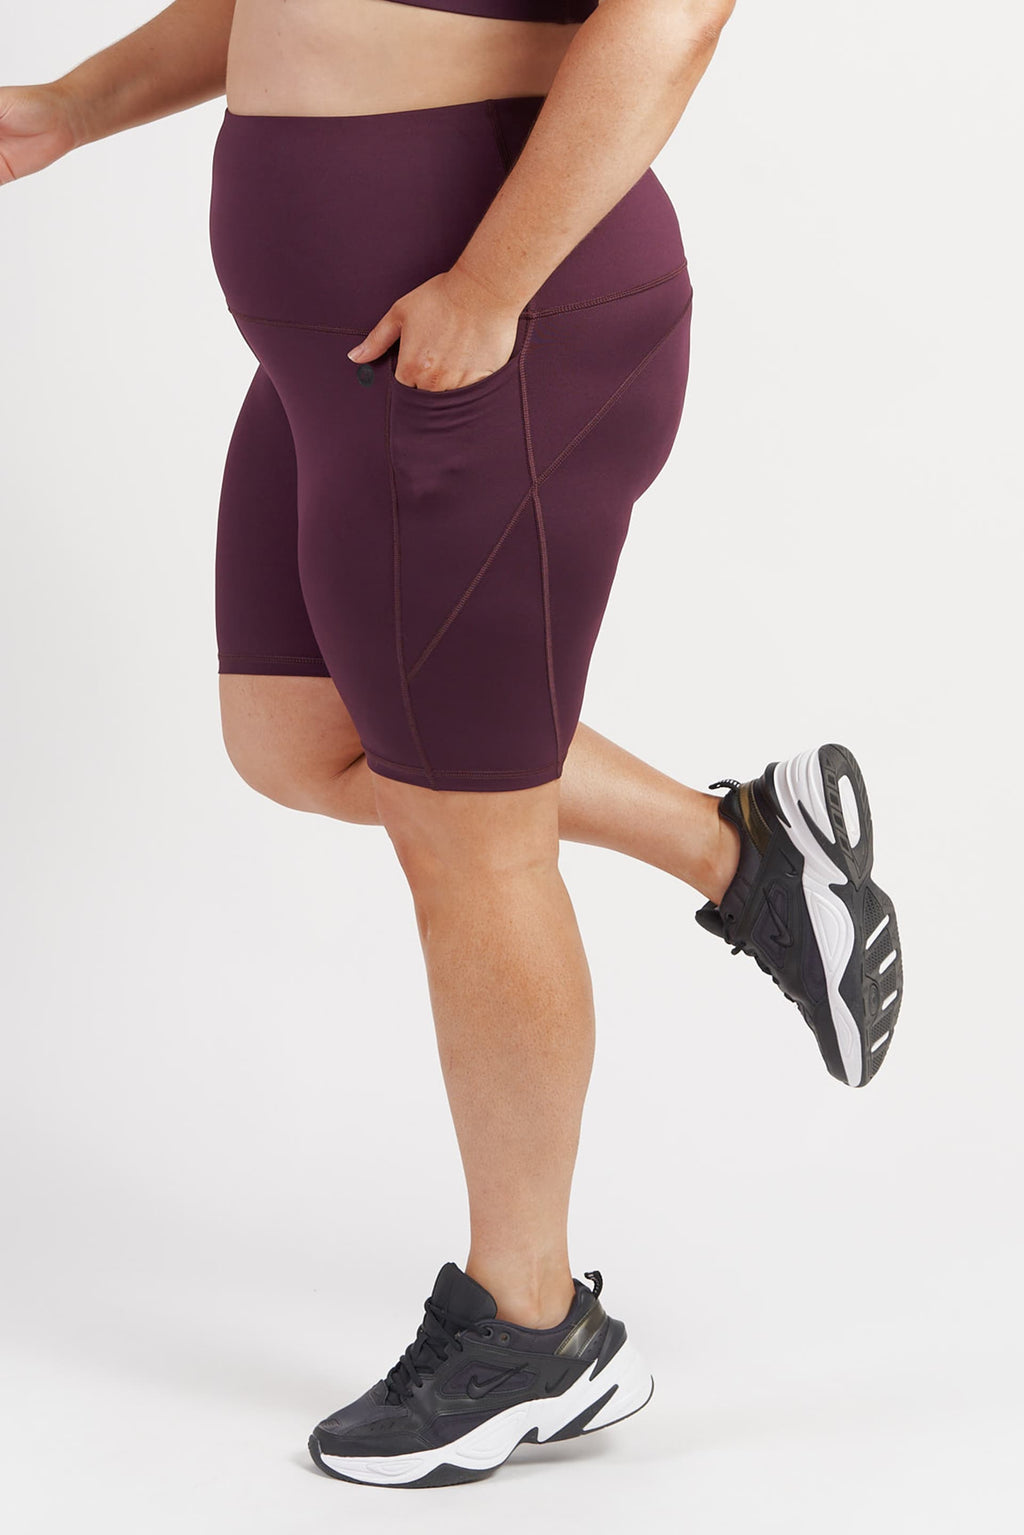 bike-short-pocket-tights-wine-plussize-side